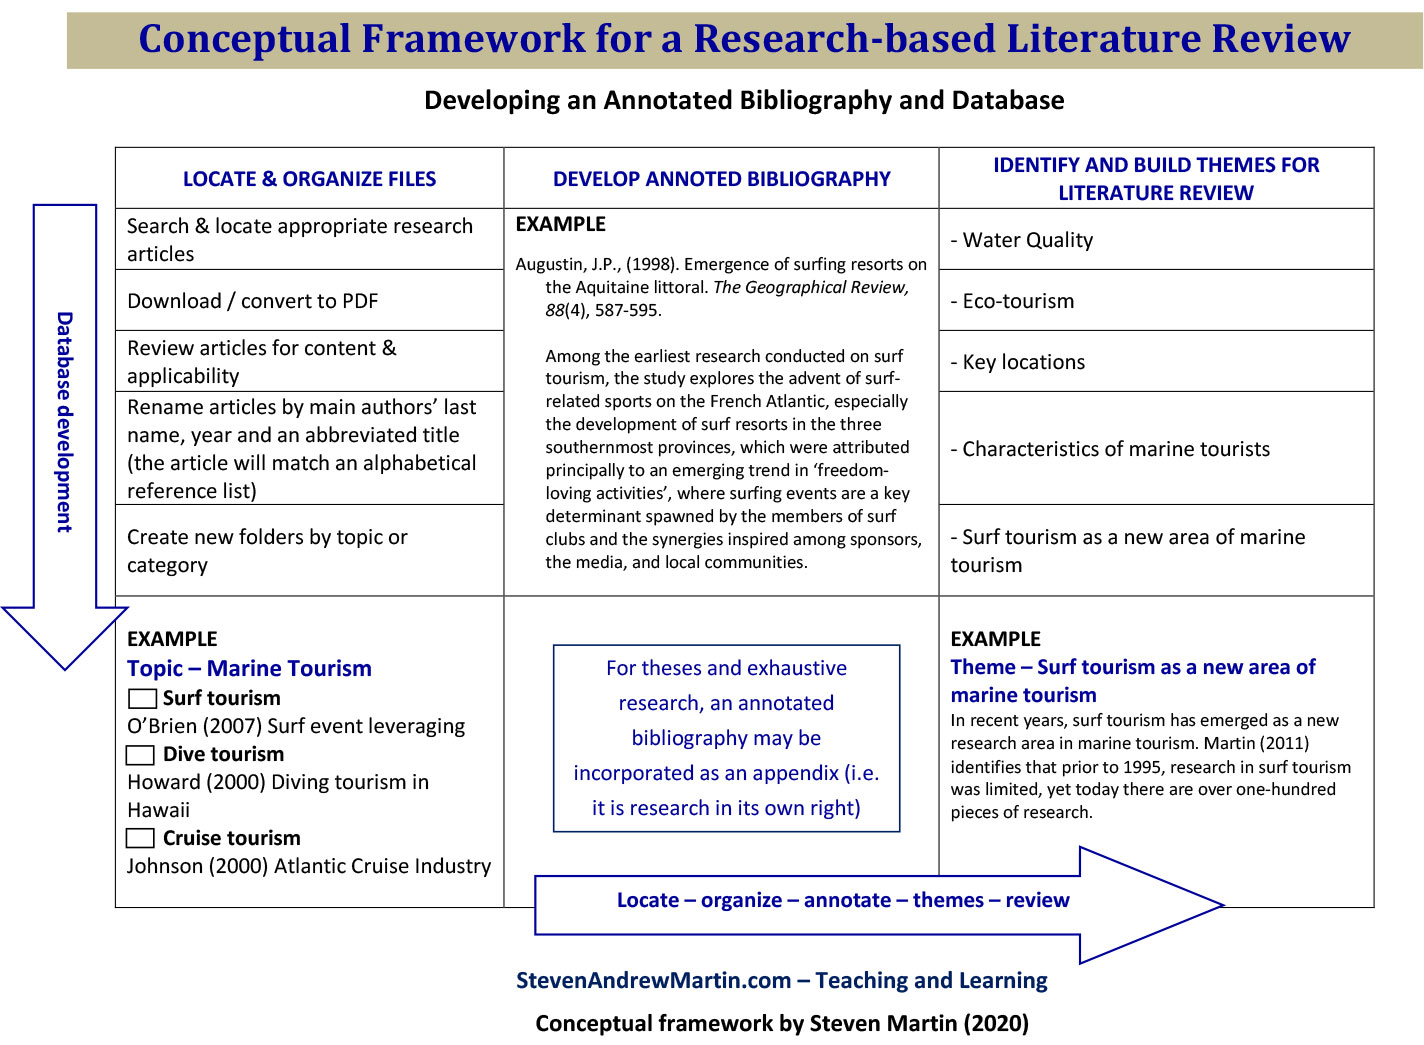 Literature Review File Organization Concept | Annotated Bibliography for Systematic Review | Lecture Dr Steven A Martin